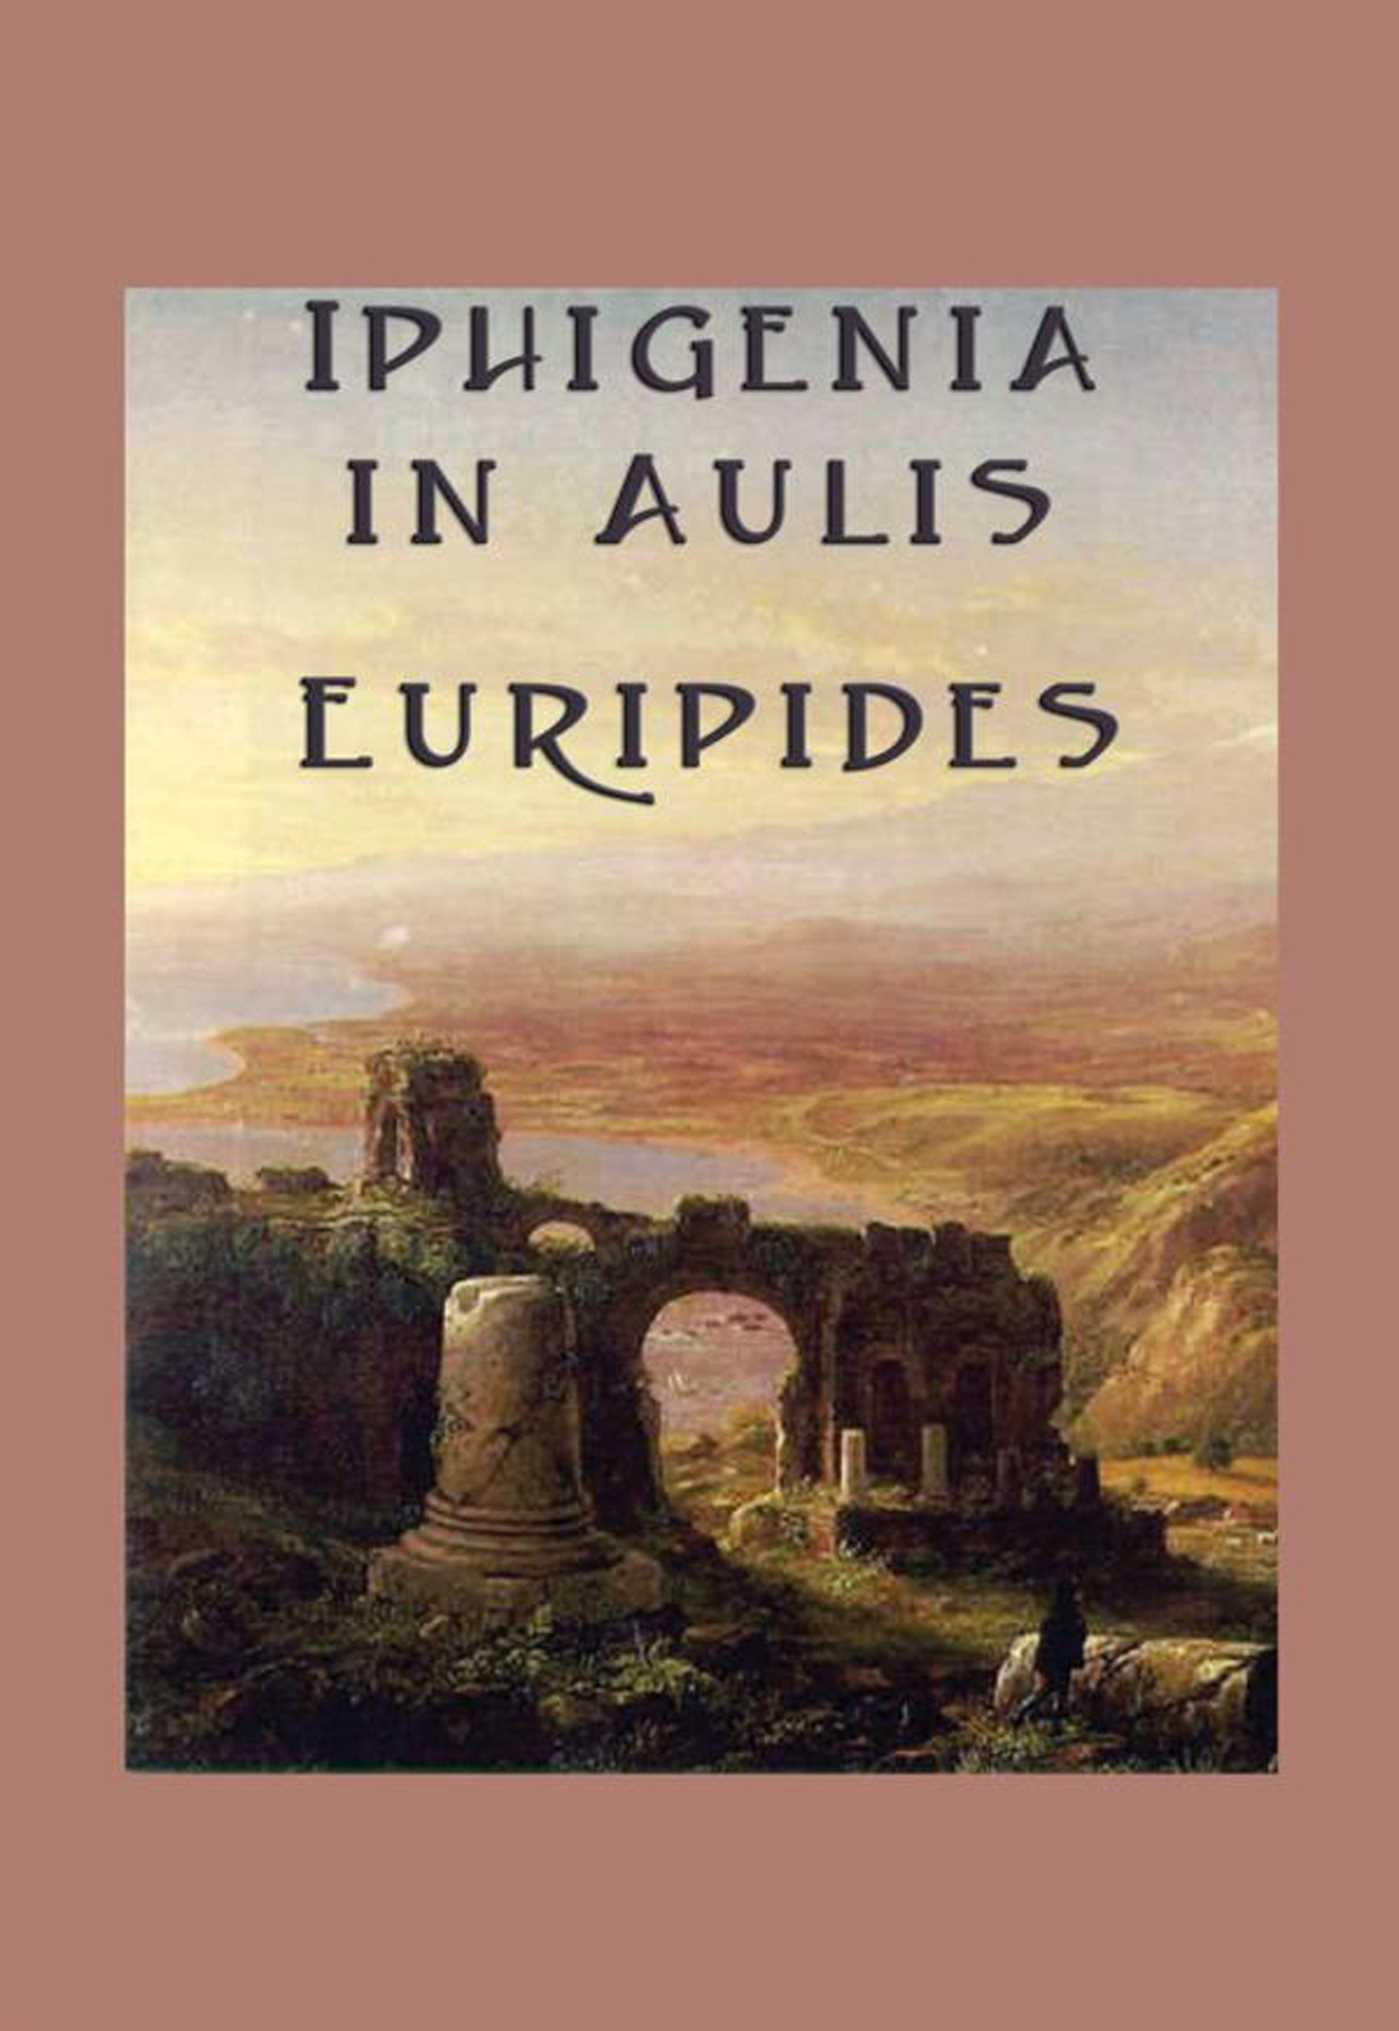 iphigenia in aulis In greek mythology, iphigenia appears in legends about the trojan war she was killed by her father, agamemnon, leader of the greek forces, in exchange for favorable wind from the gods.